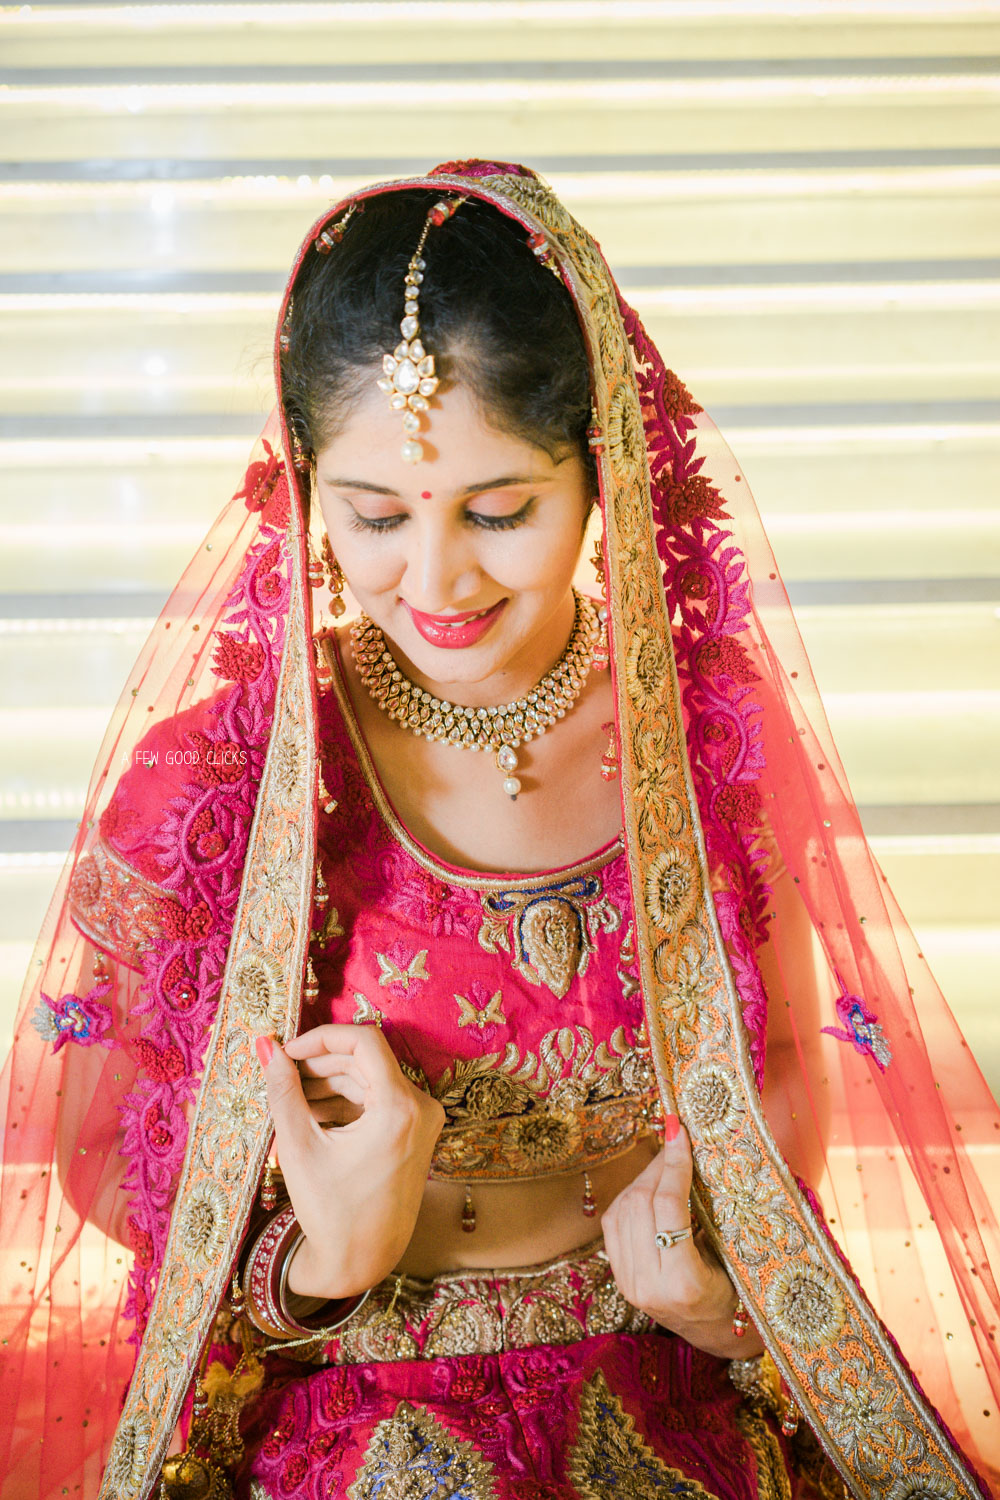 indian-bride-wedding-close-up-photography-by-afewgoodclicks-71.jpg